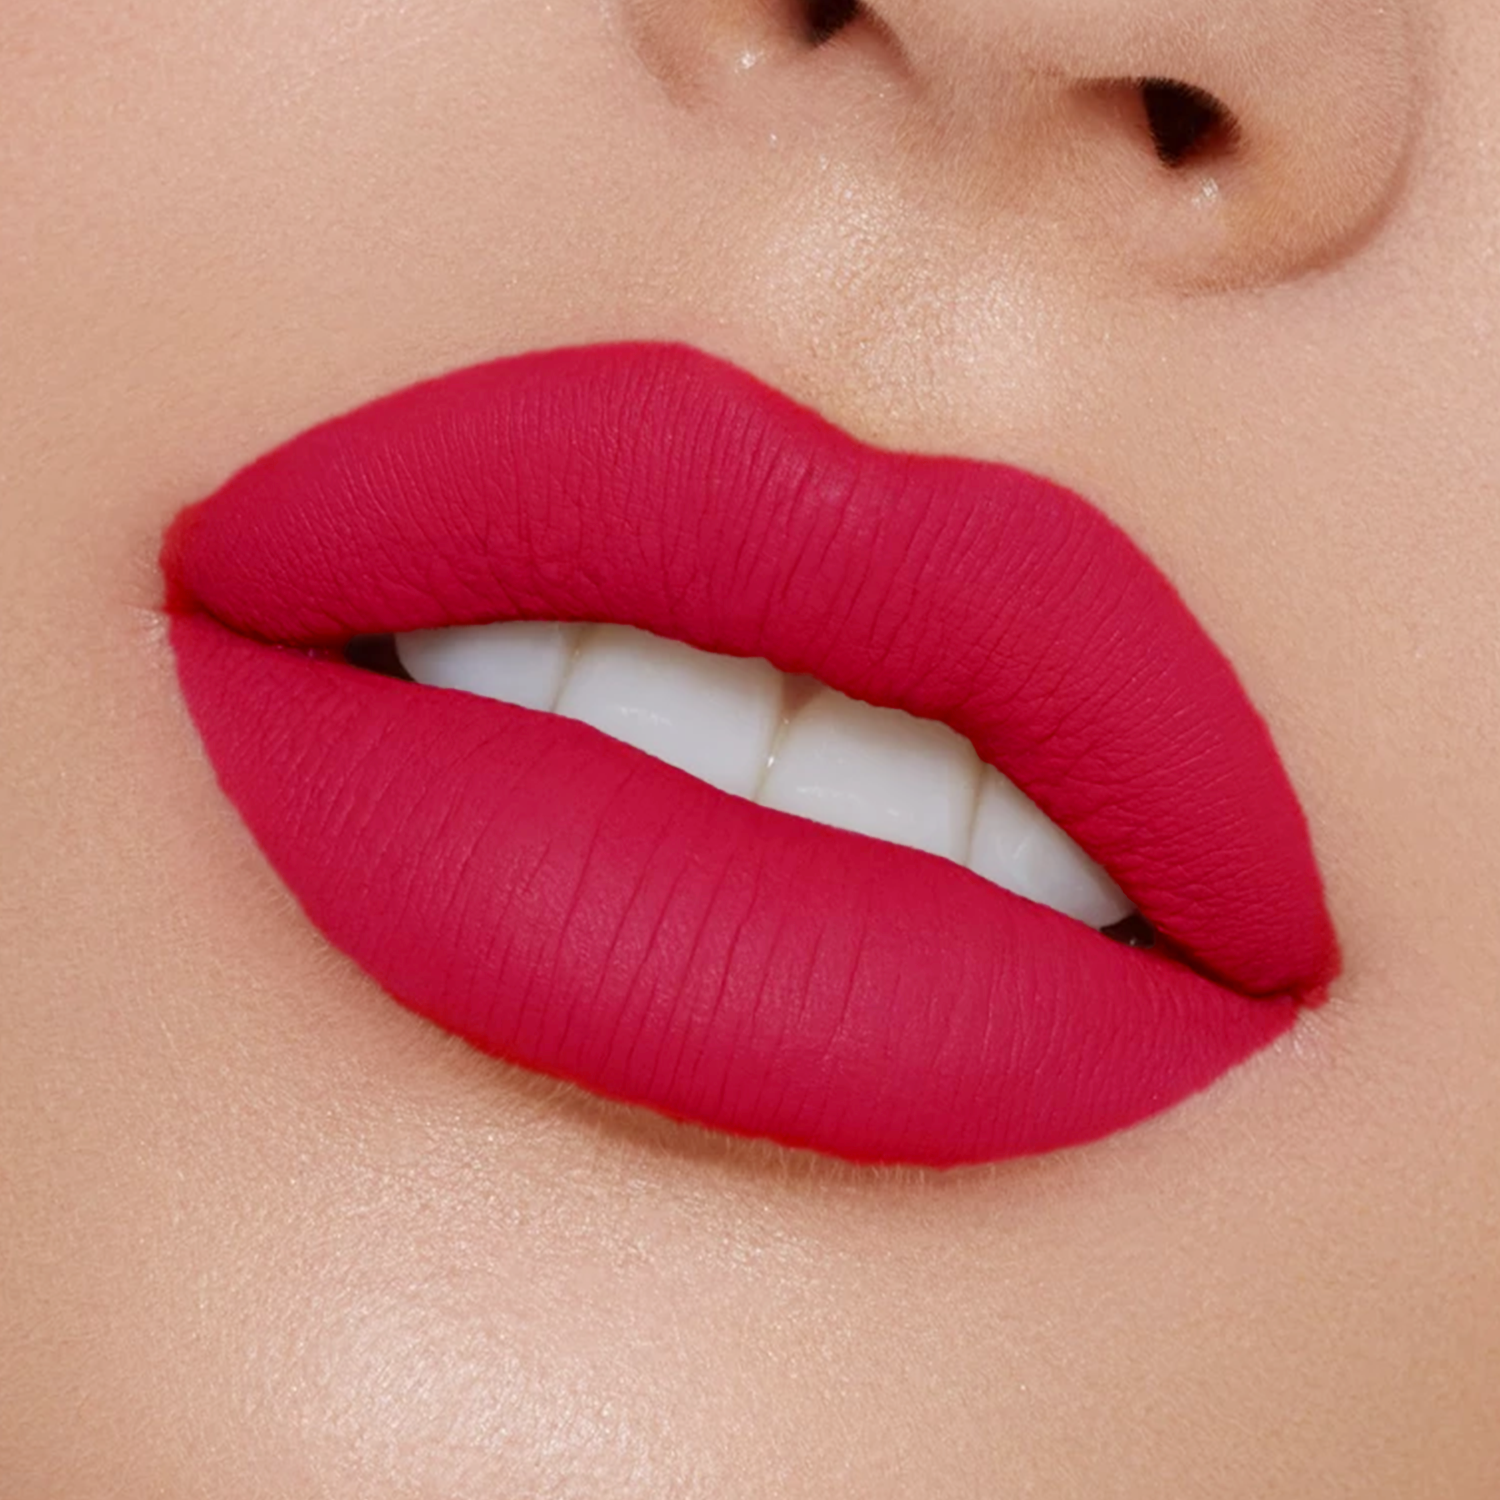 PINKLINE Matte Lipstick 3.8gm,Sweet Red (Sweet Red, 23 g)